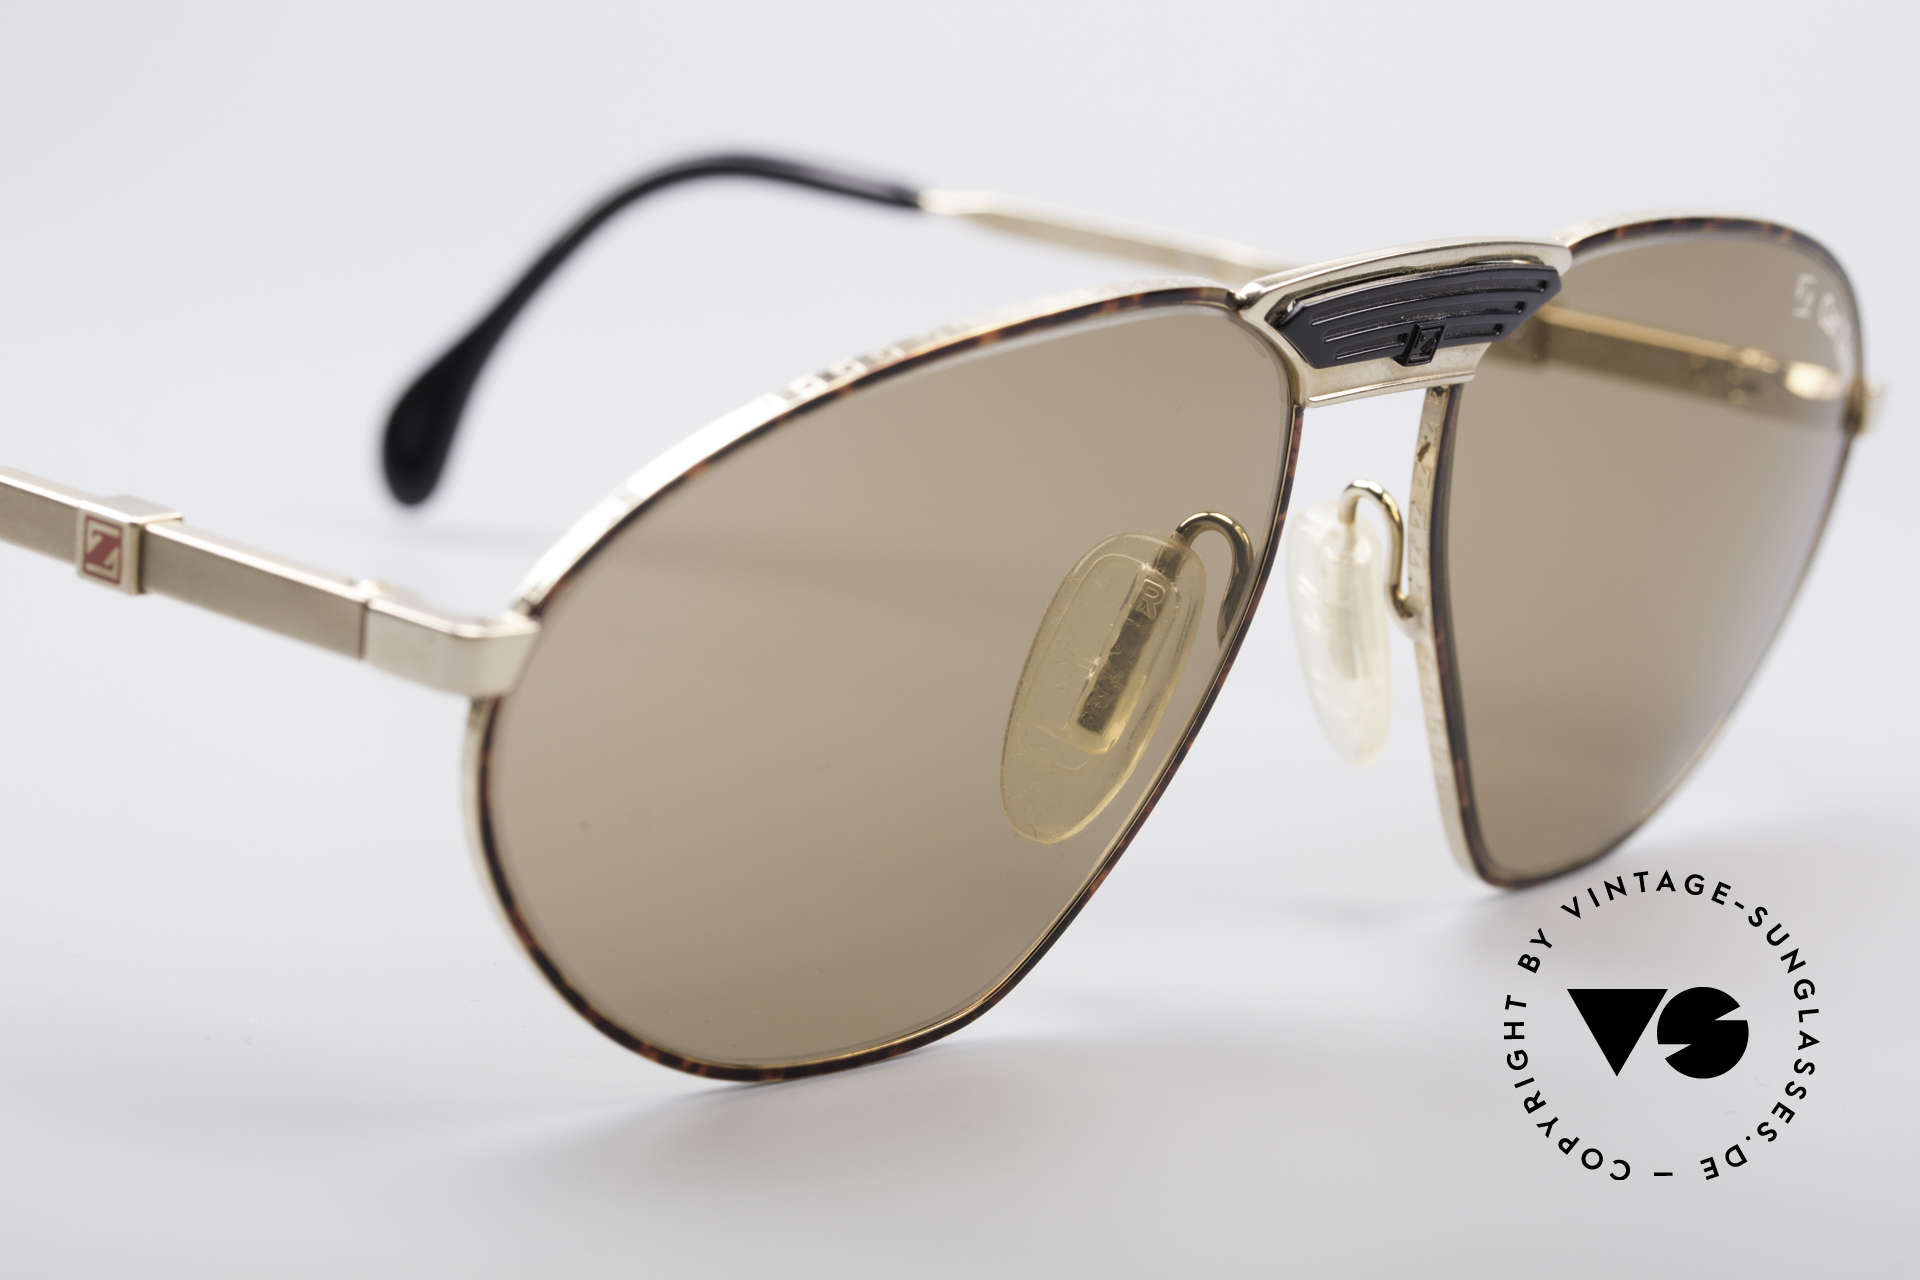 Zeiss 9927 Old 80's Top Quality Shades, never worn (like all our vintage Zeiss 1980's eyewear), Made for Men